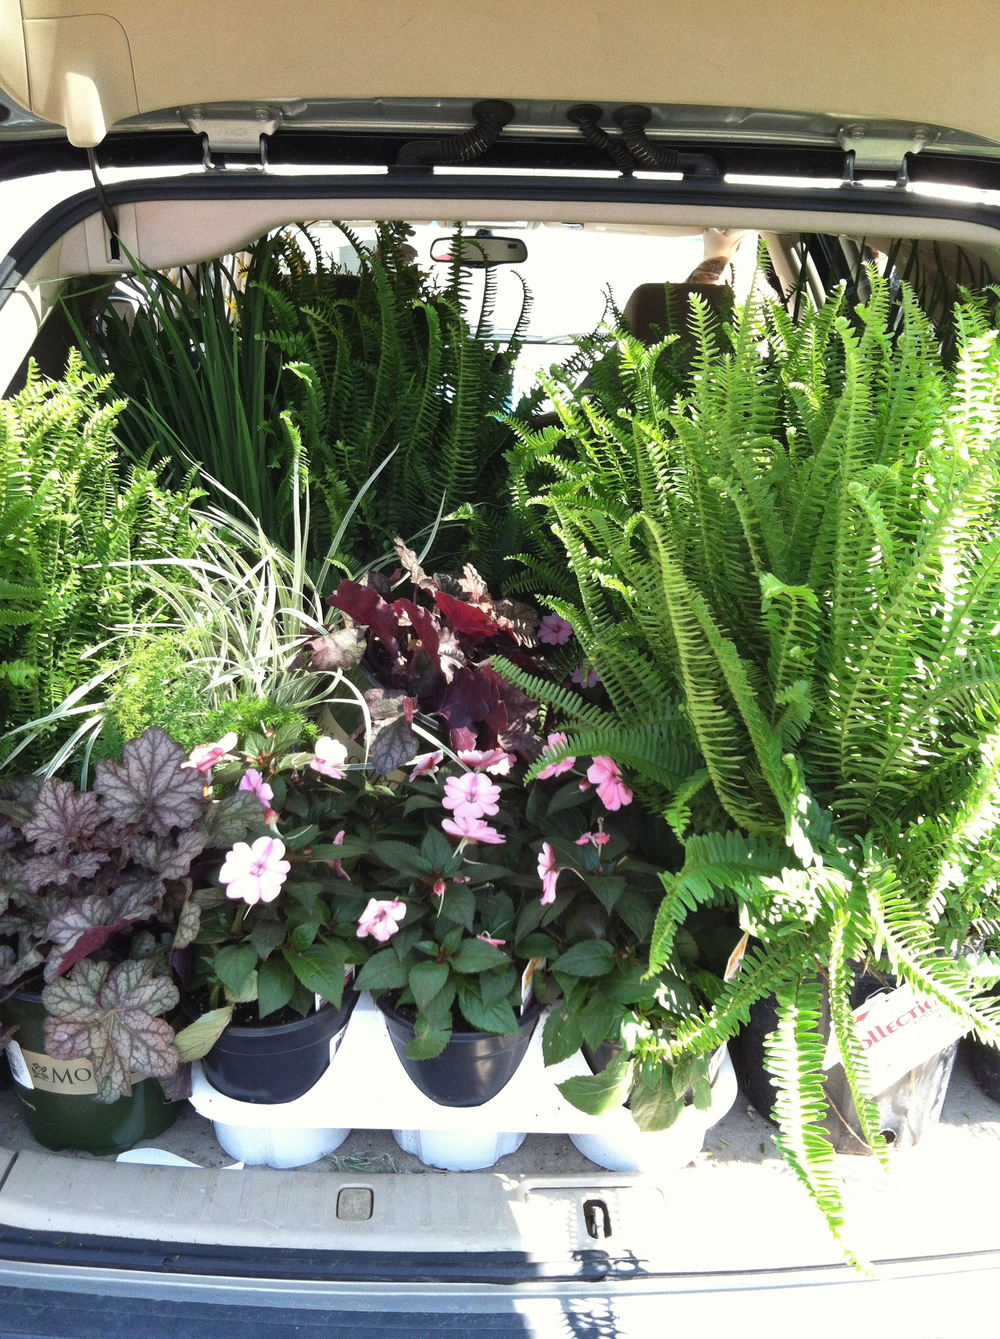 Our car loaded down from Lowe's! Such fun!